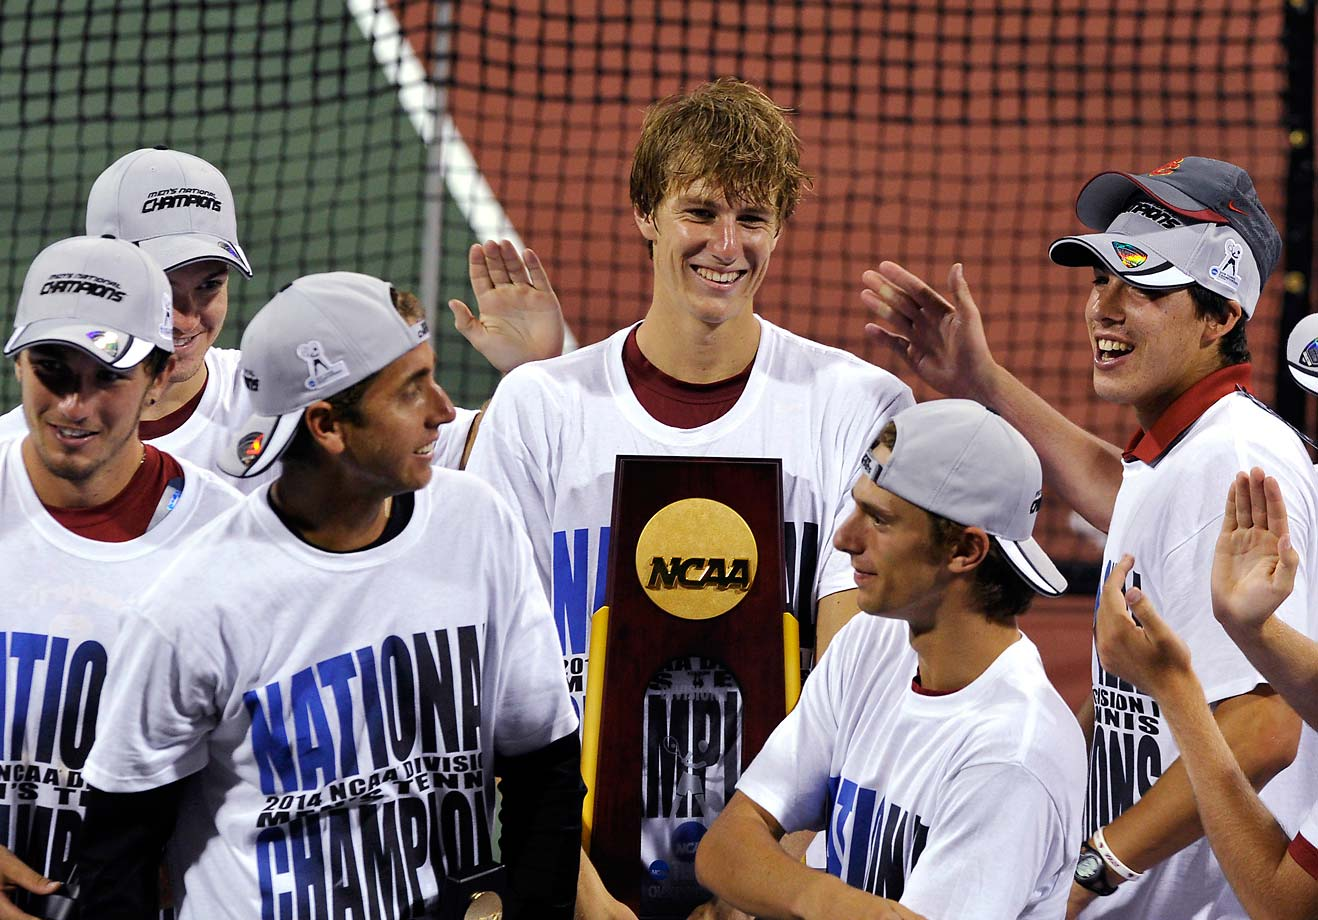 USC's men's tennis team celebrates its National Championship win.  They made it into the history books, since their victory makes it the school's fifth in six years.